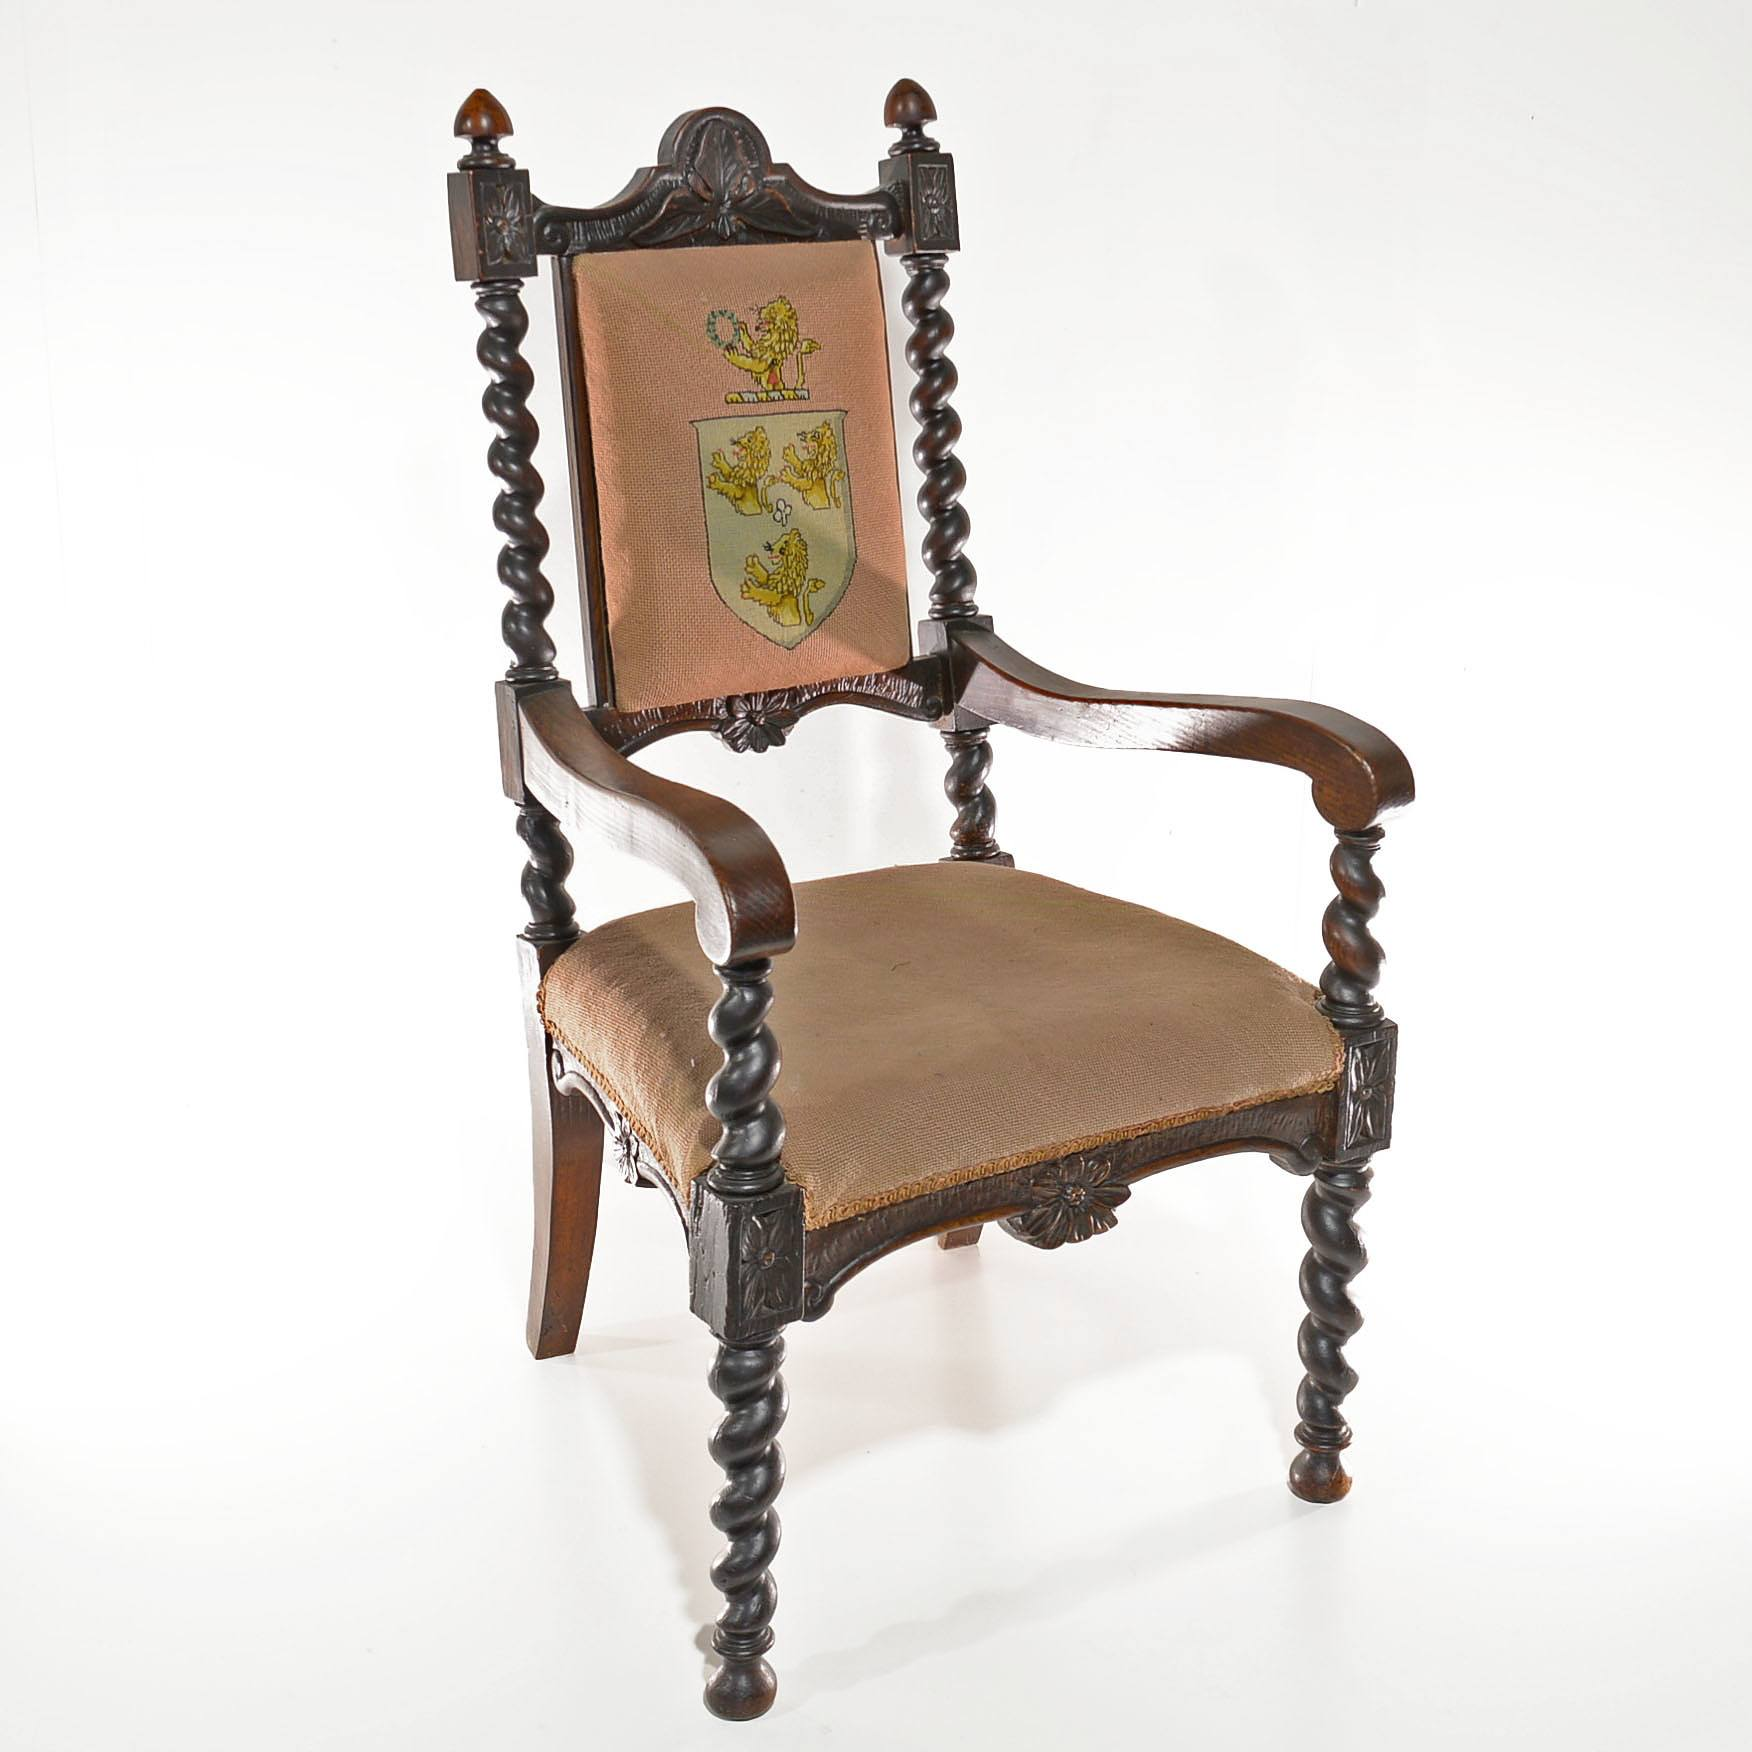 'Large Late Victorian Jacobean Style Oak Armchair with Heraldic Tapestry'